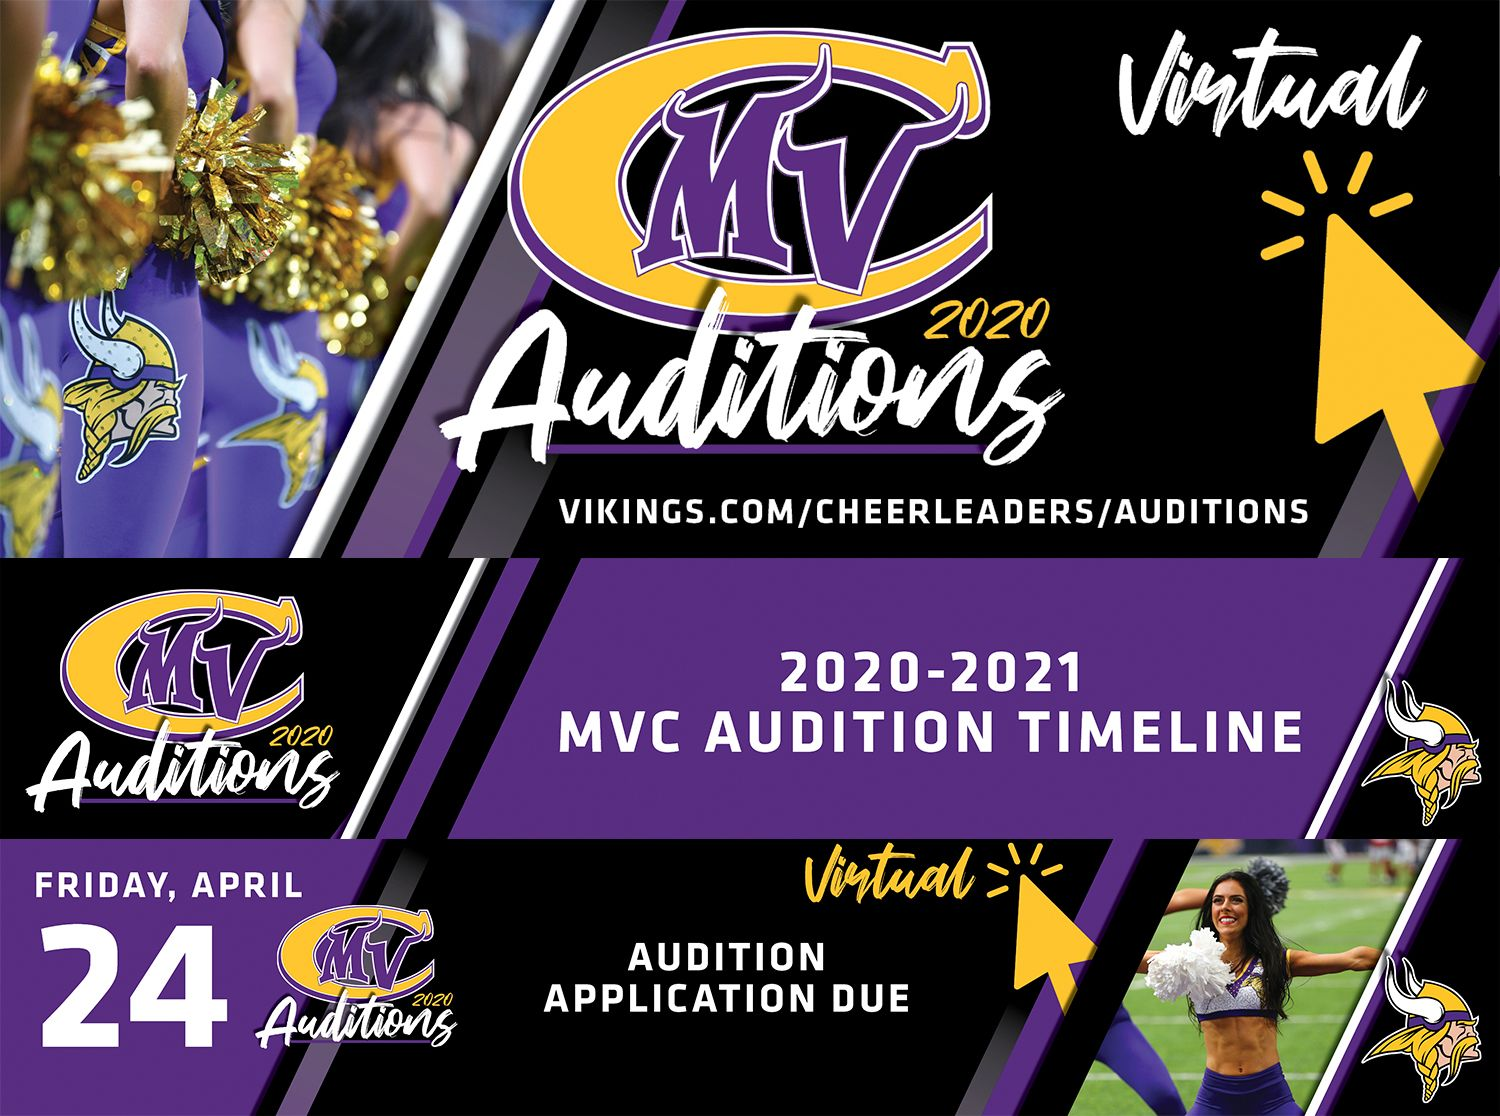 Friday, April 24th | Virtual Audition Applications Due